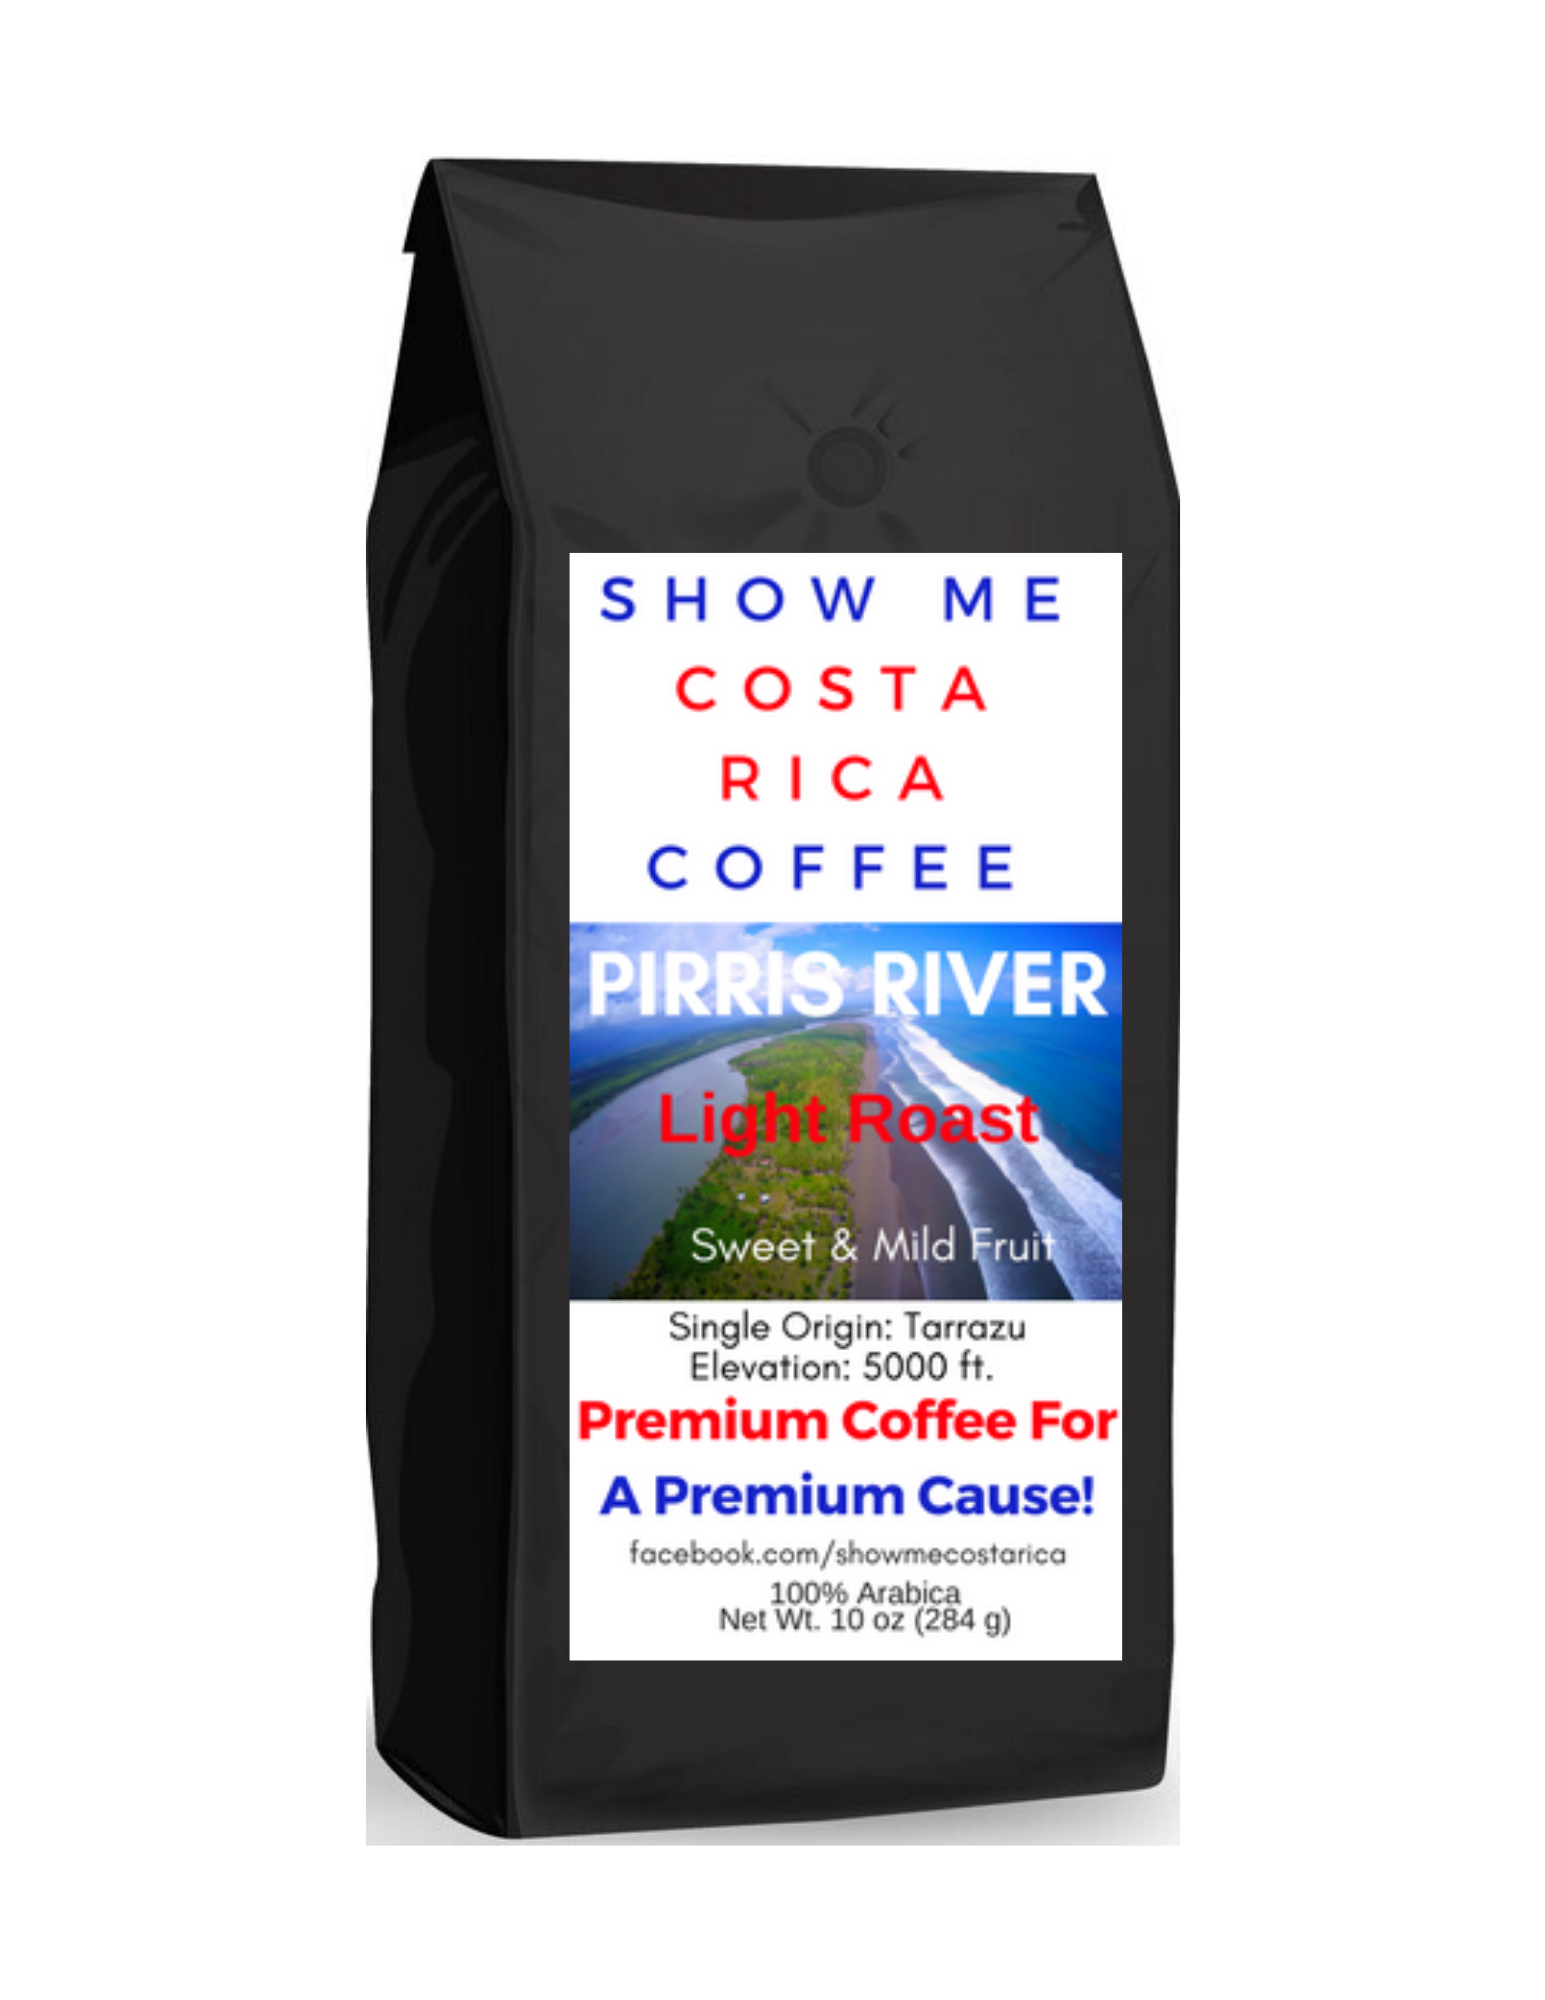 1 Bag Of Your Favorite Coffee